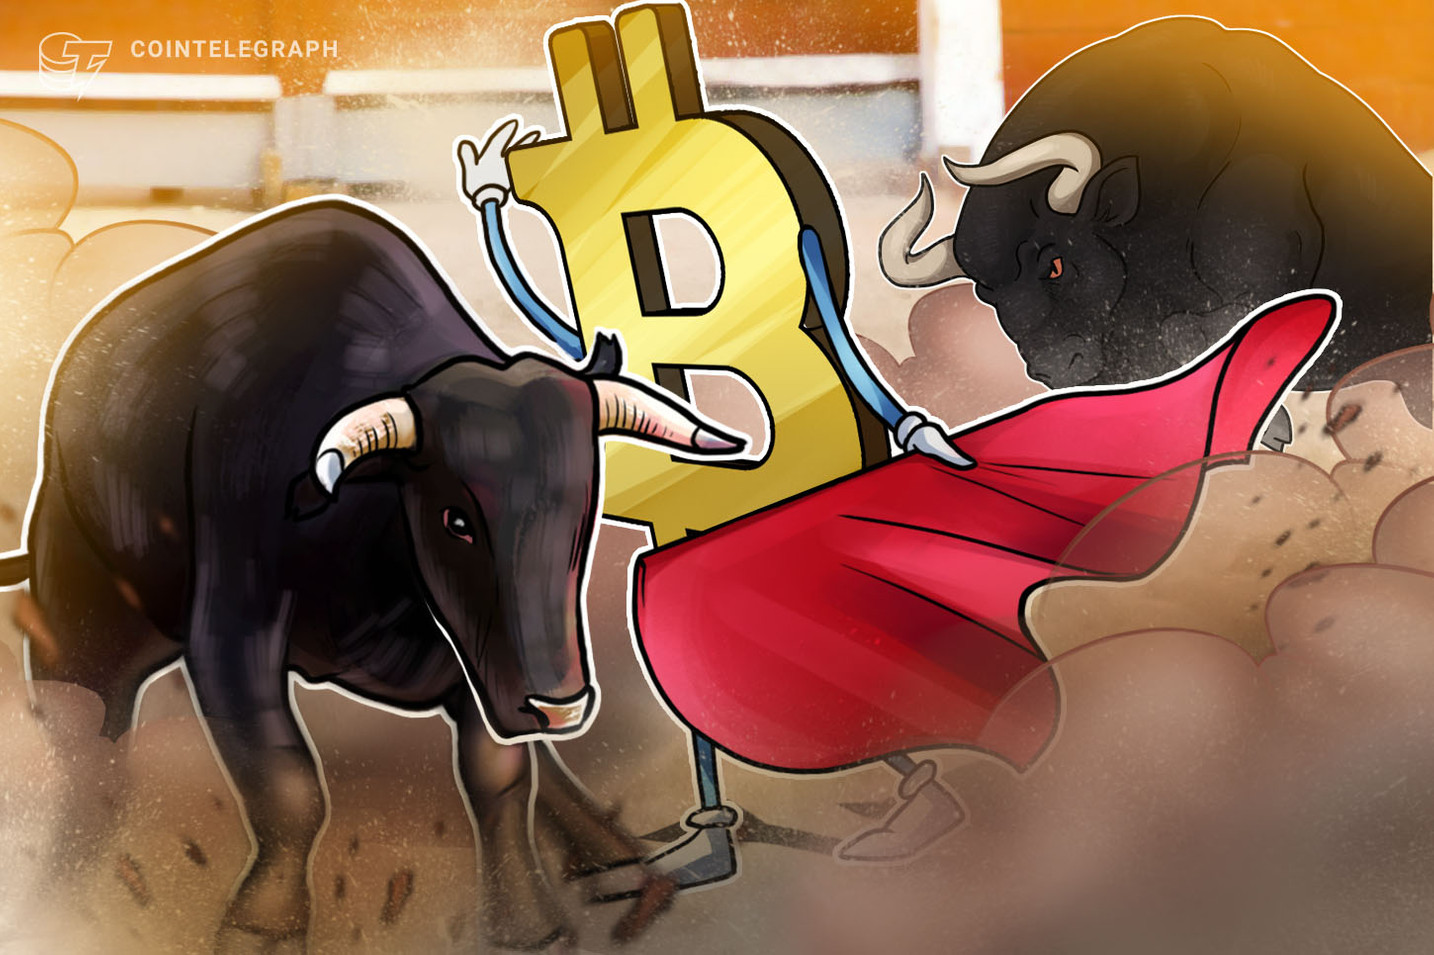 Key Trading Indicator Suggests Bitcoin Bulls Are Steadily Accumulating